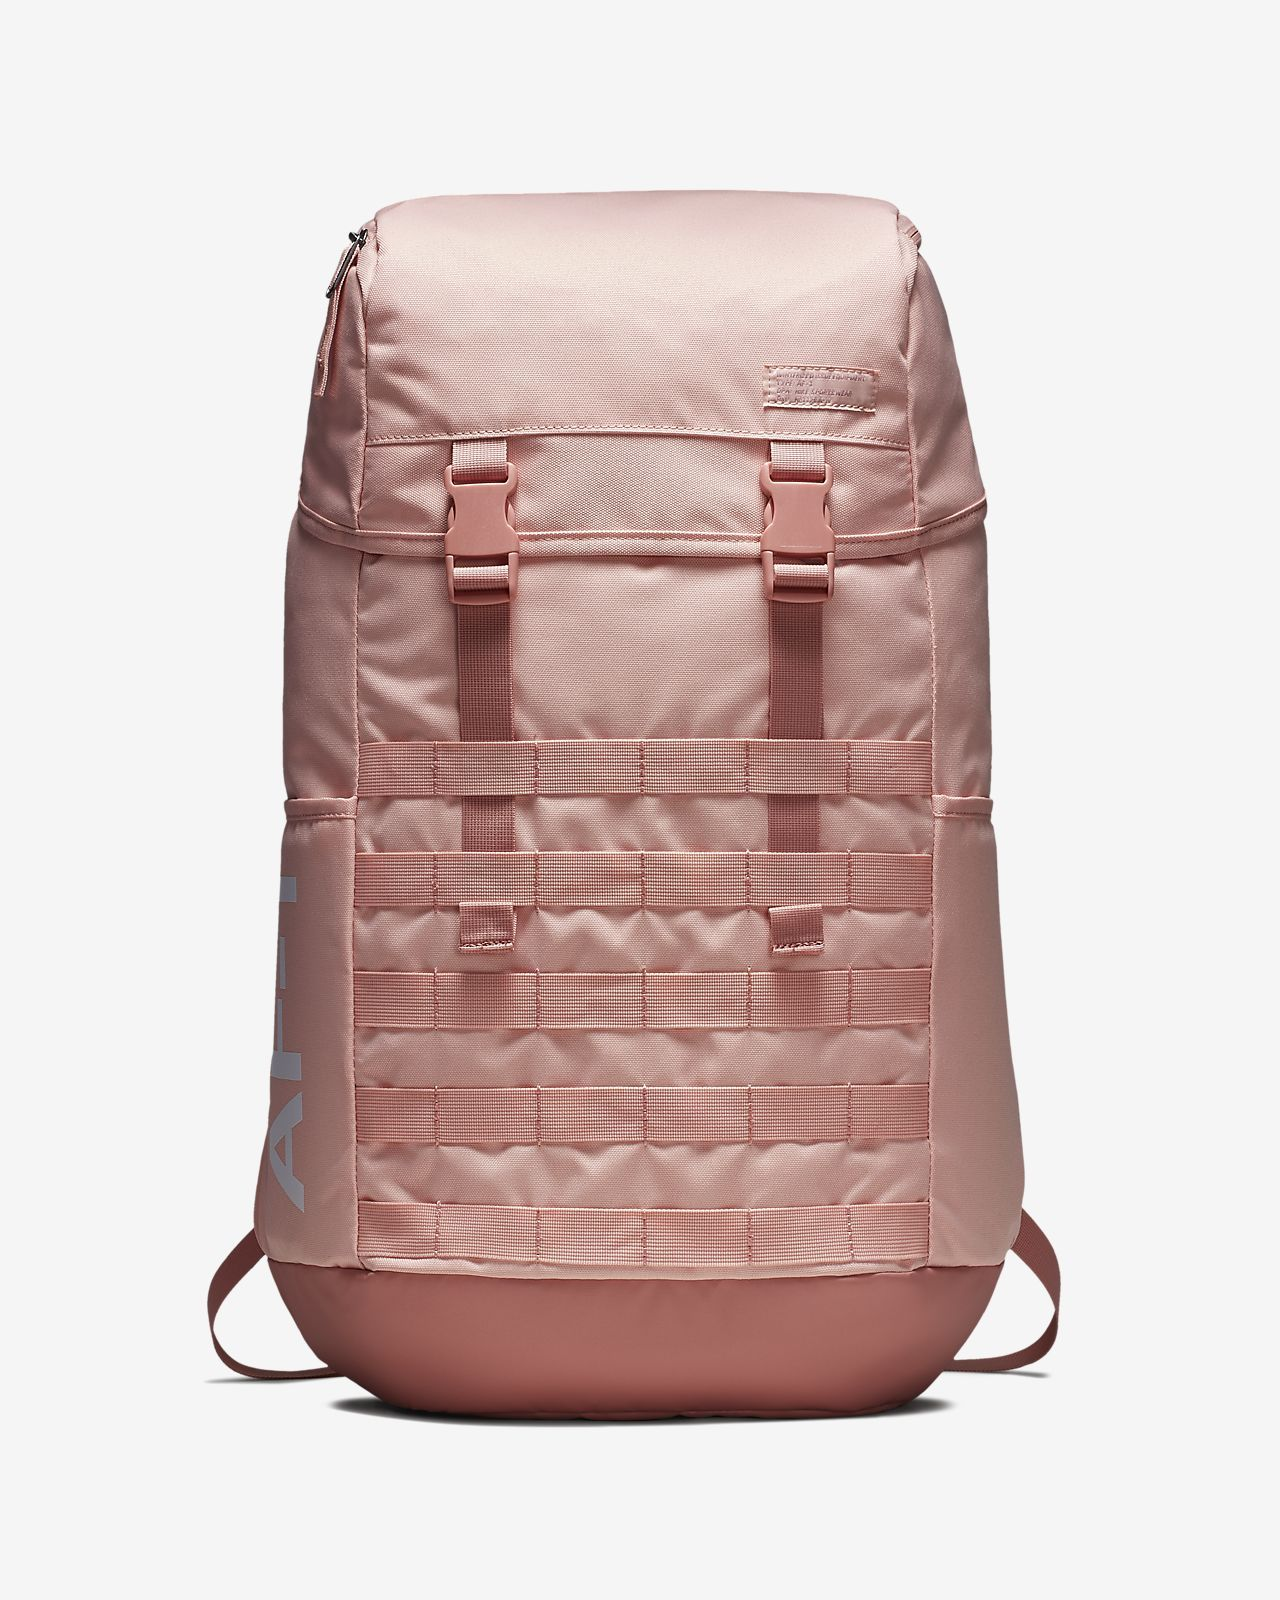 Sportswear AF1 Backpack | Backpacks, Handbags for men, Nike